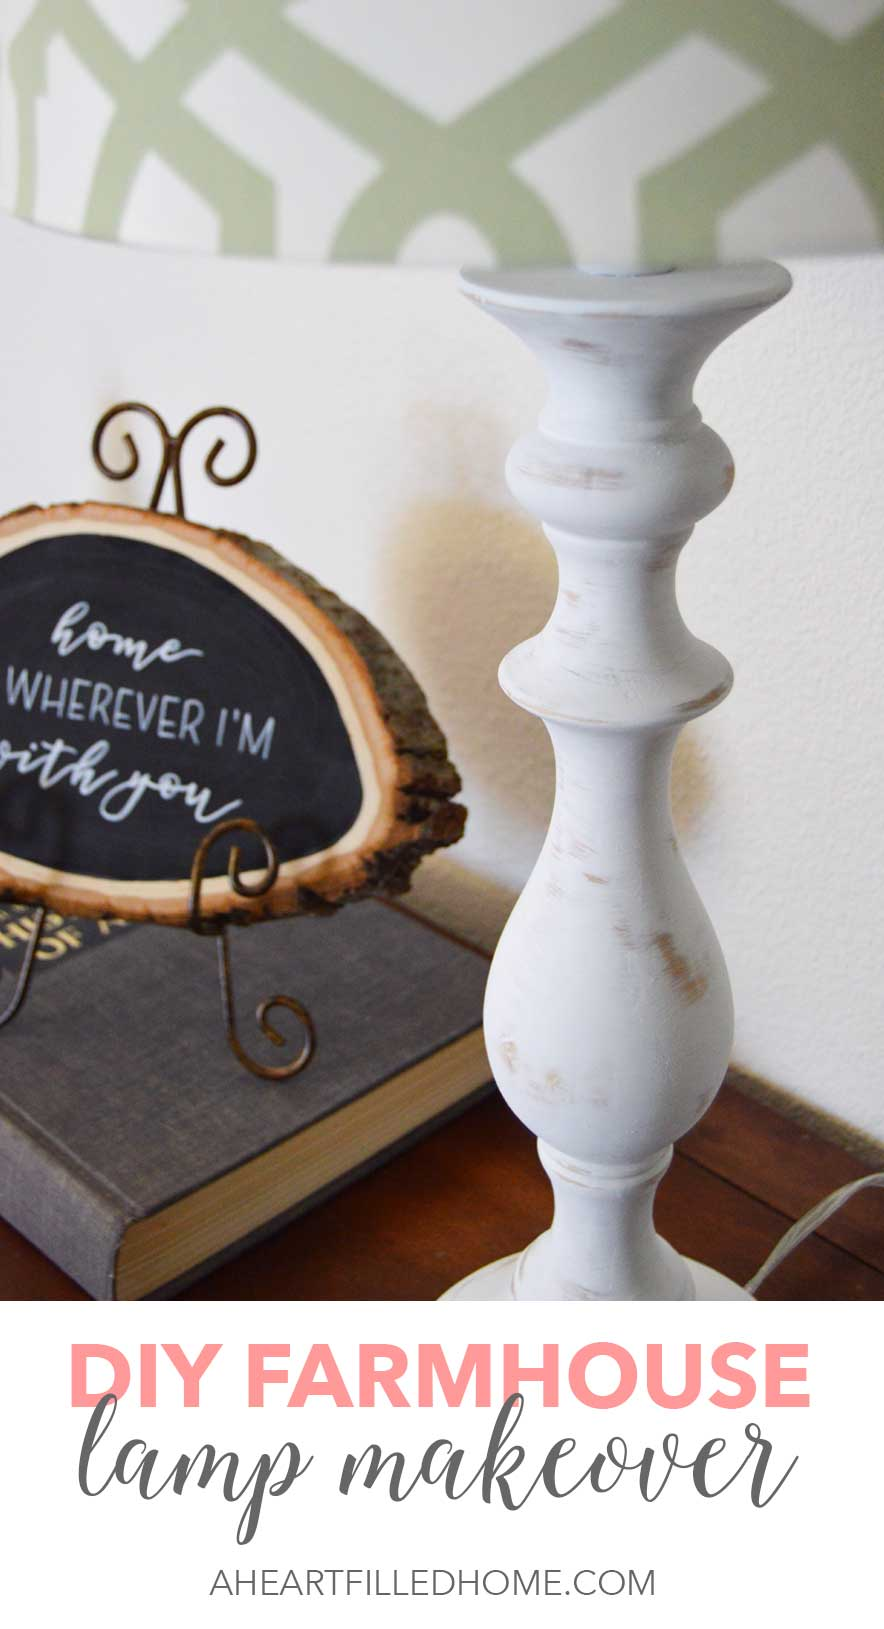 This DIY Farmhouse Lamp Makeover turned out so pretty! It's so simple and easy to do!